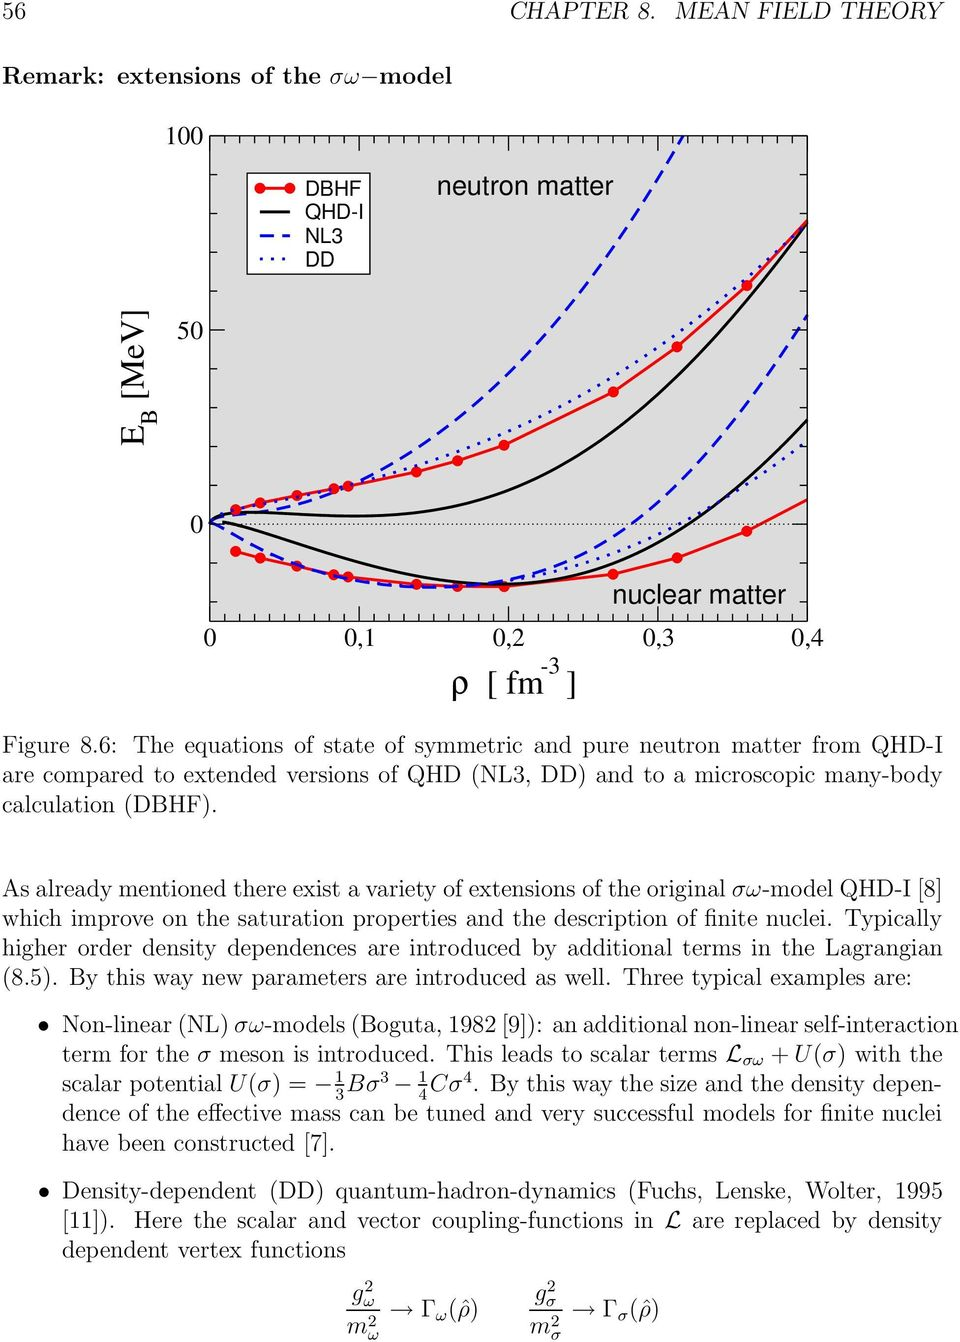 As already mentioned there exist a variety of extensions of the original σω-model QHD-I [8] which improve on the saturation properties and the description of finite nuclei.